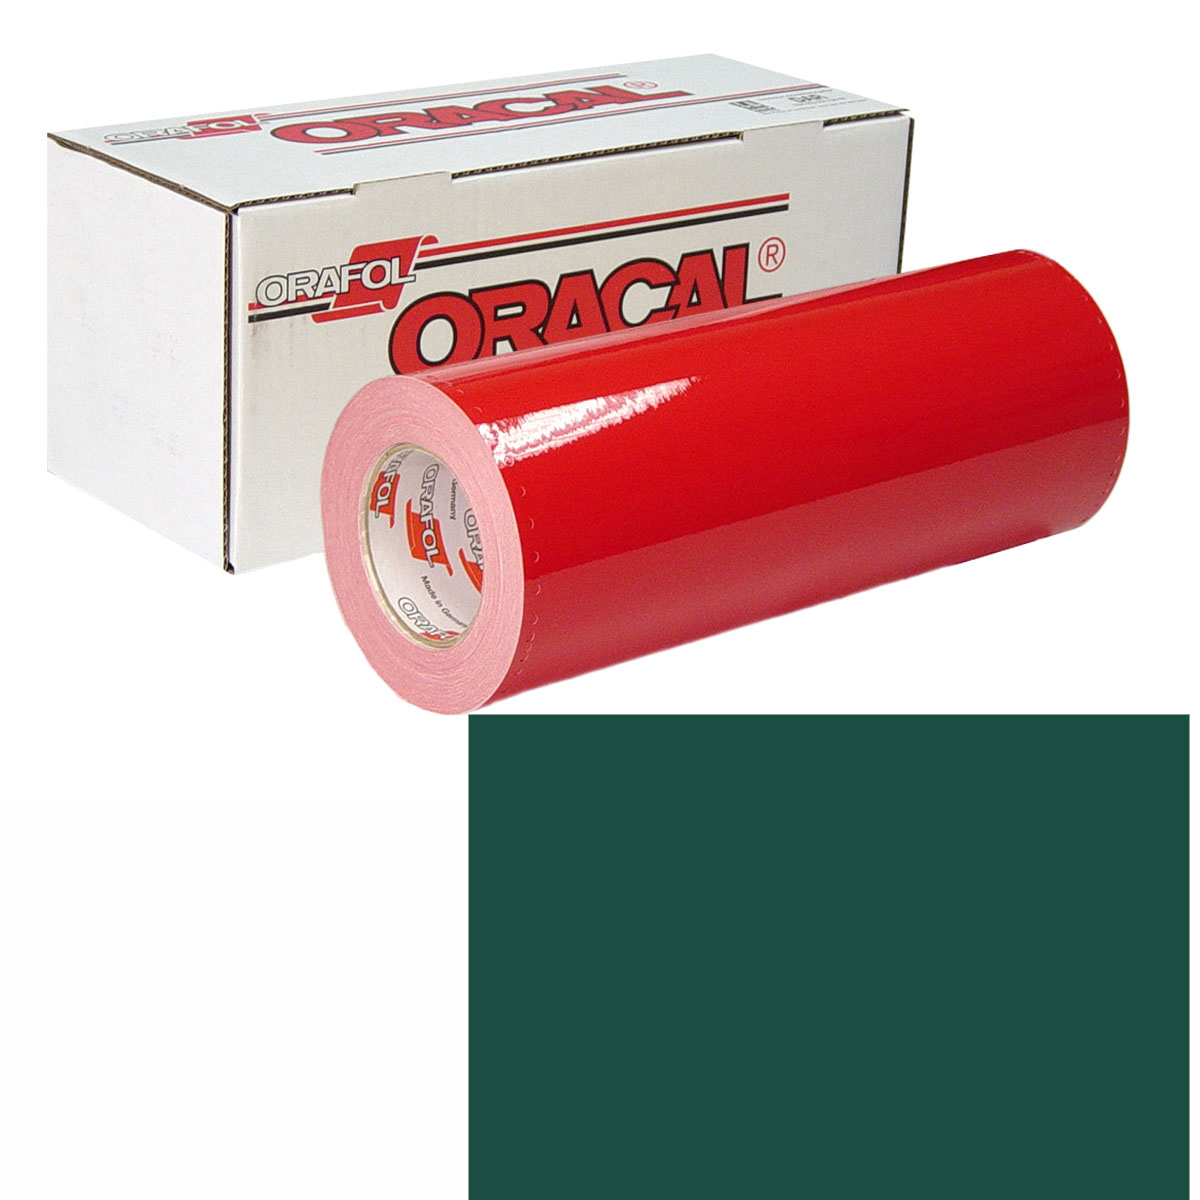 ORACAL 951M Unp 24in X 10yd 676 Wood Green